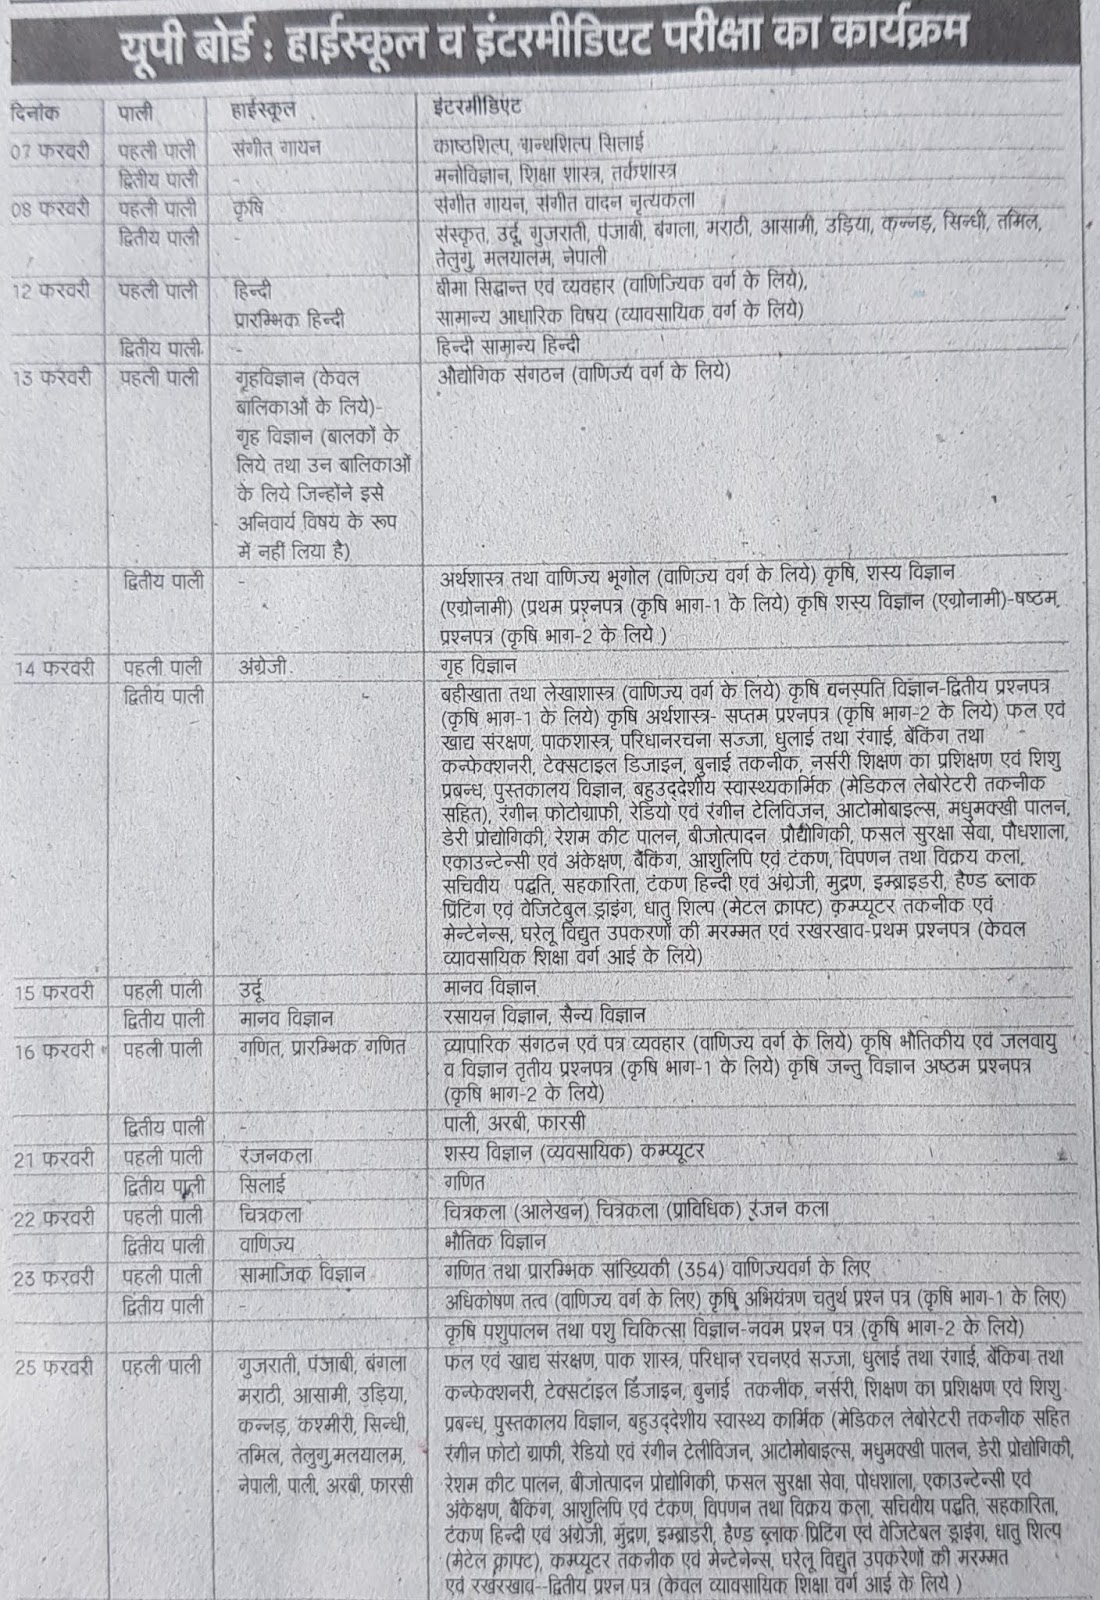 UP Board Date Sheet 2019